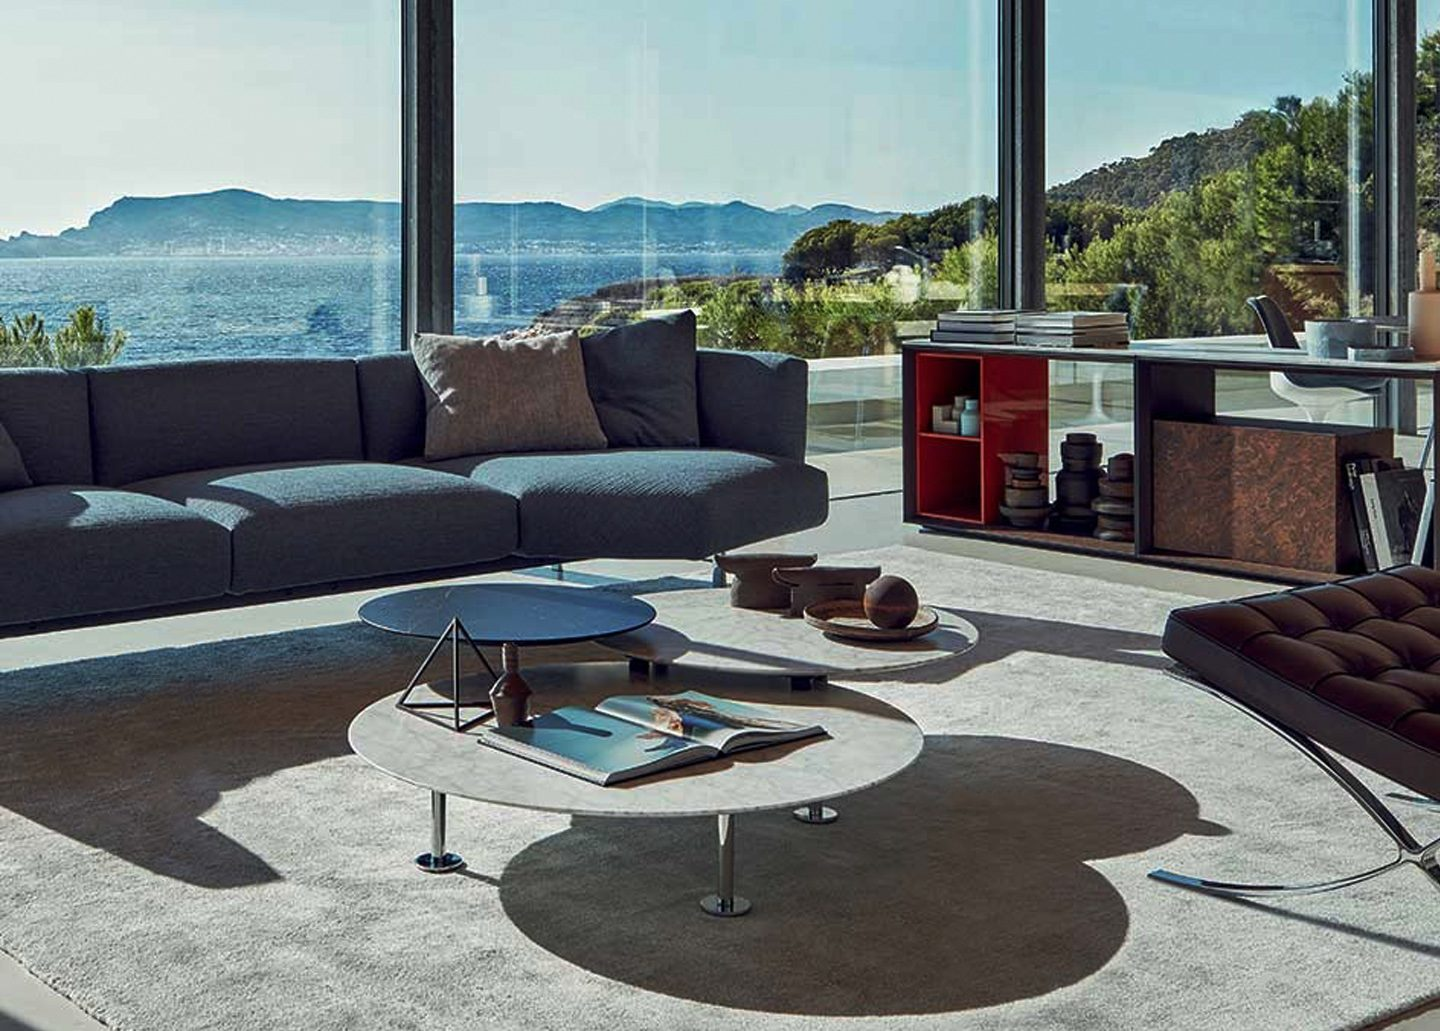 GRASSHOPPER LOW COFFEE TABLE BY KNOLL